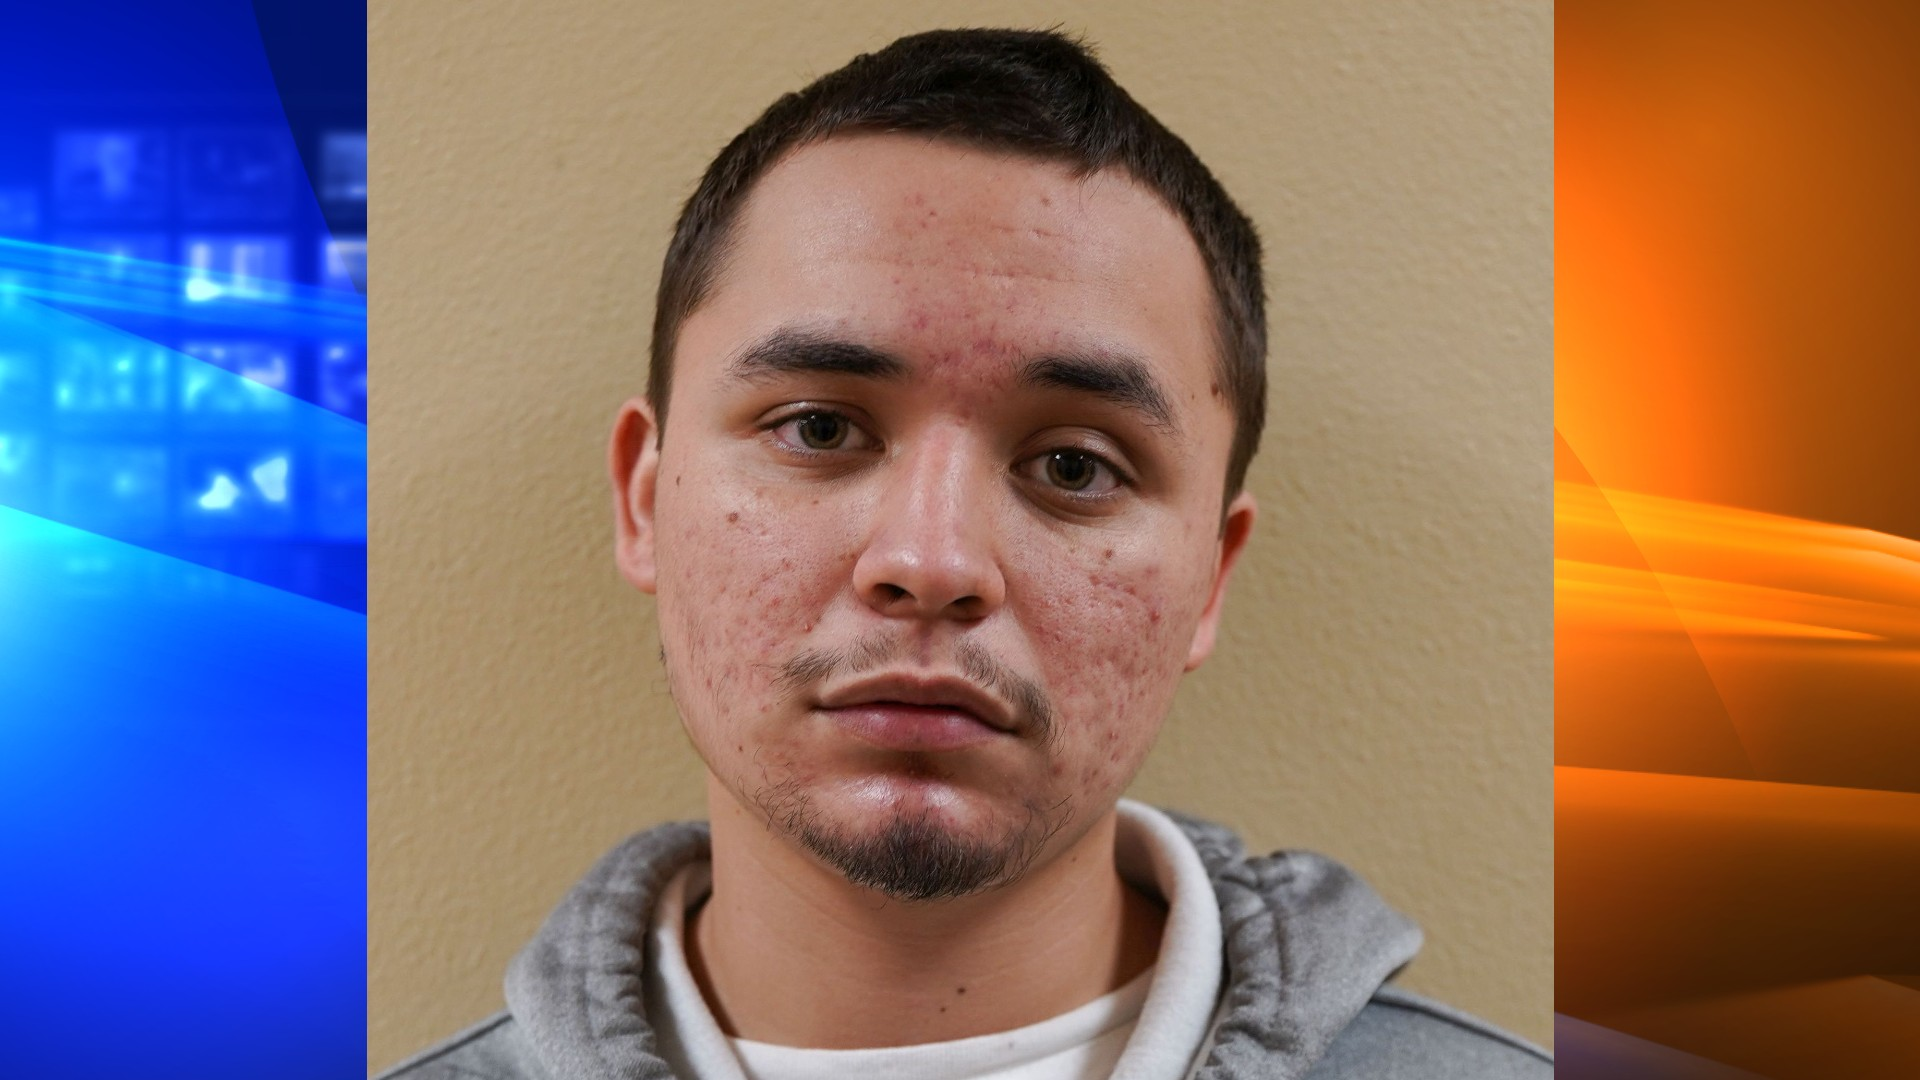 Zachary Arellano is seen in a photo released by the Rialto Police Department on May 20, 2021.